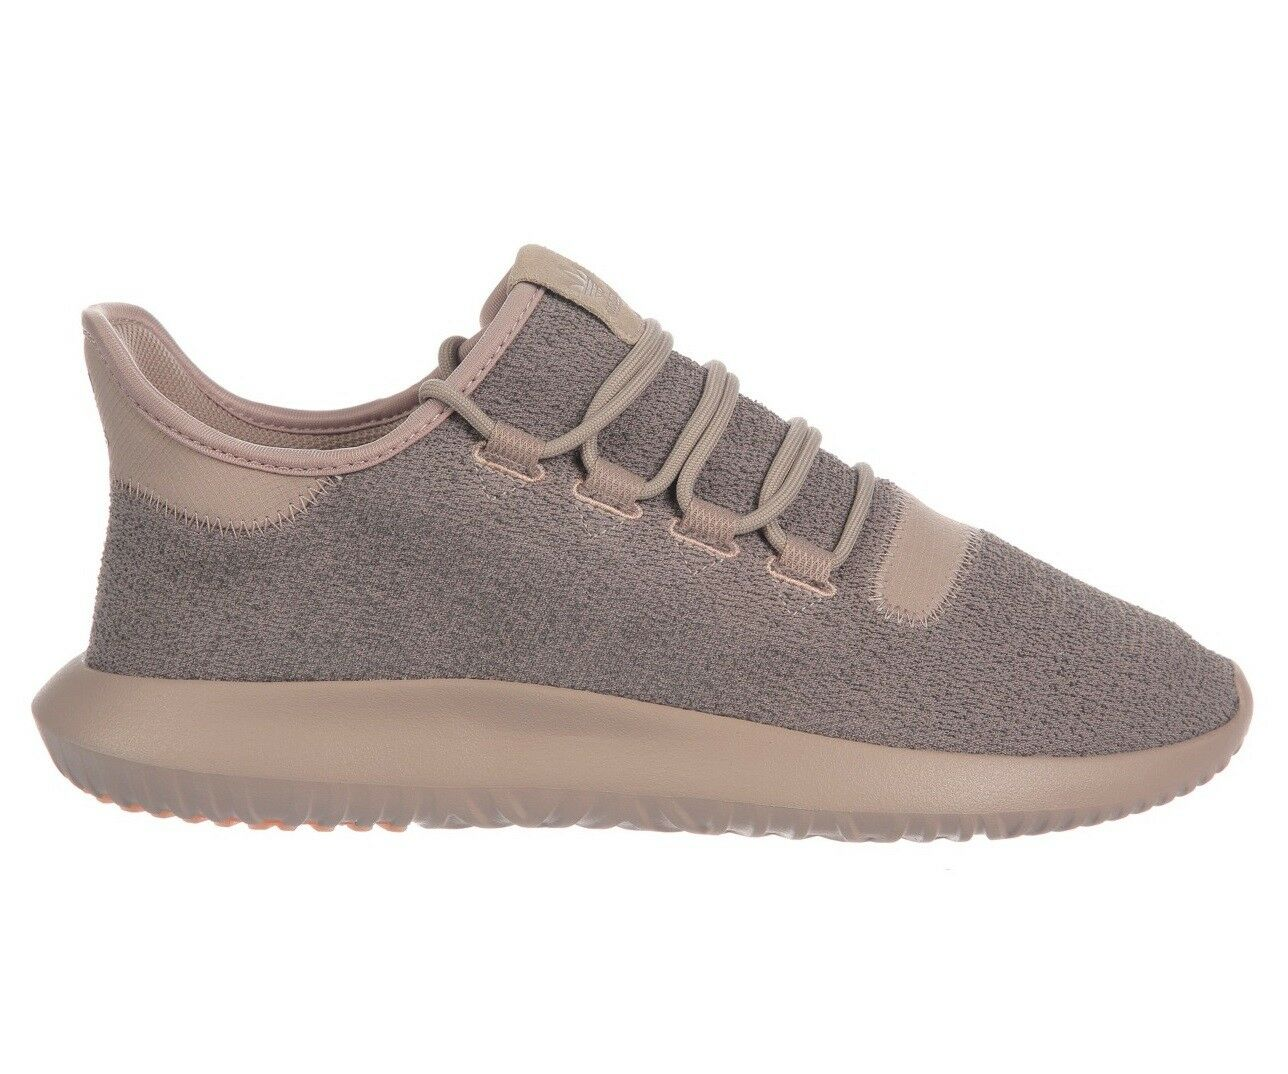 Adidas Tubular Shadow Mens BY3574 Vapour Grey Raw Pink Athletic Shoes Size 12